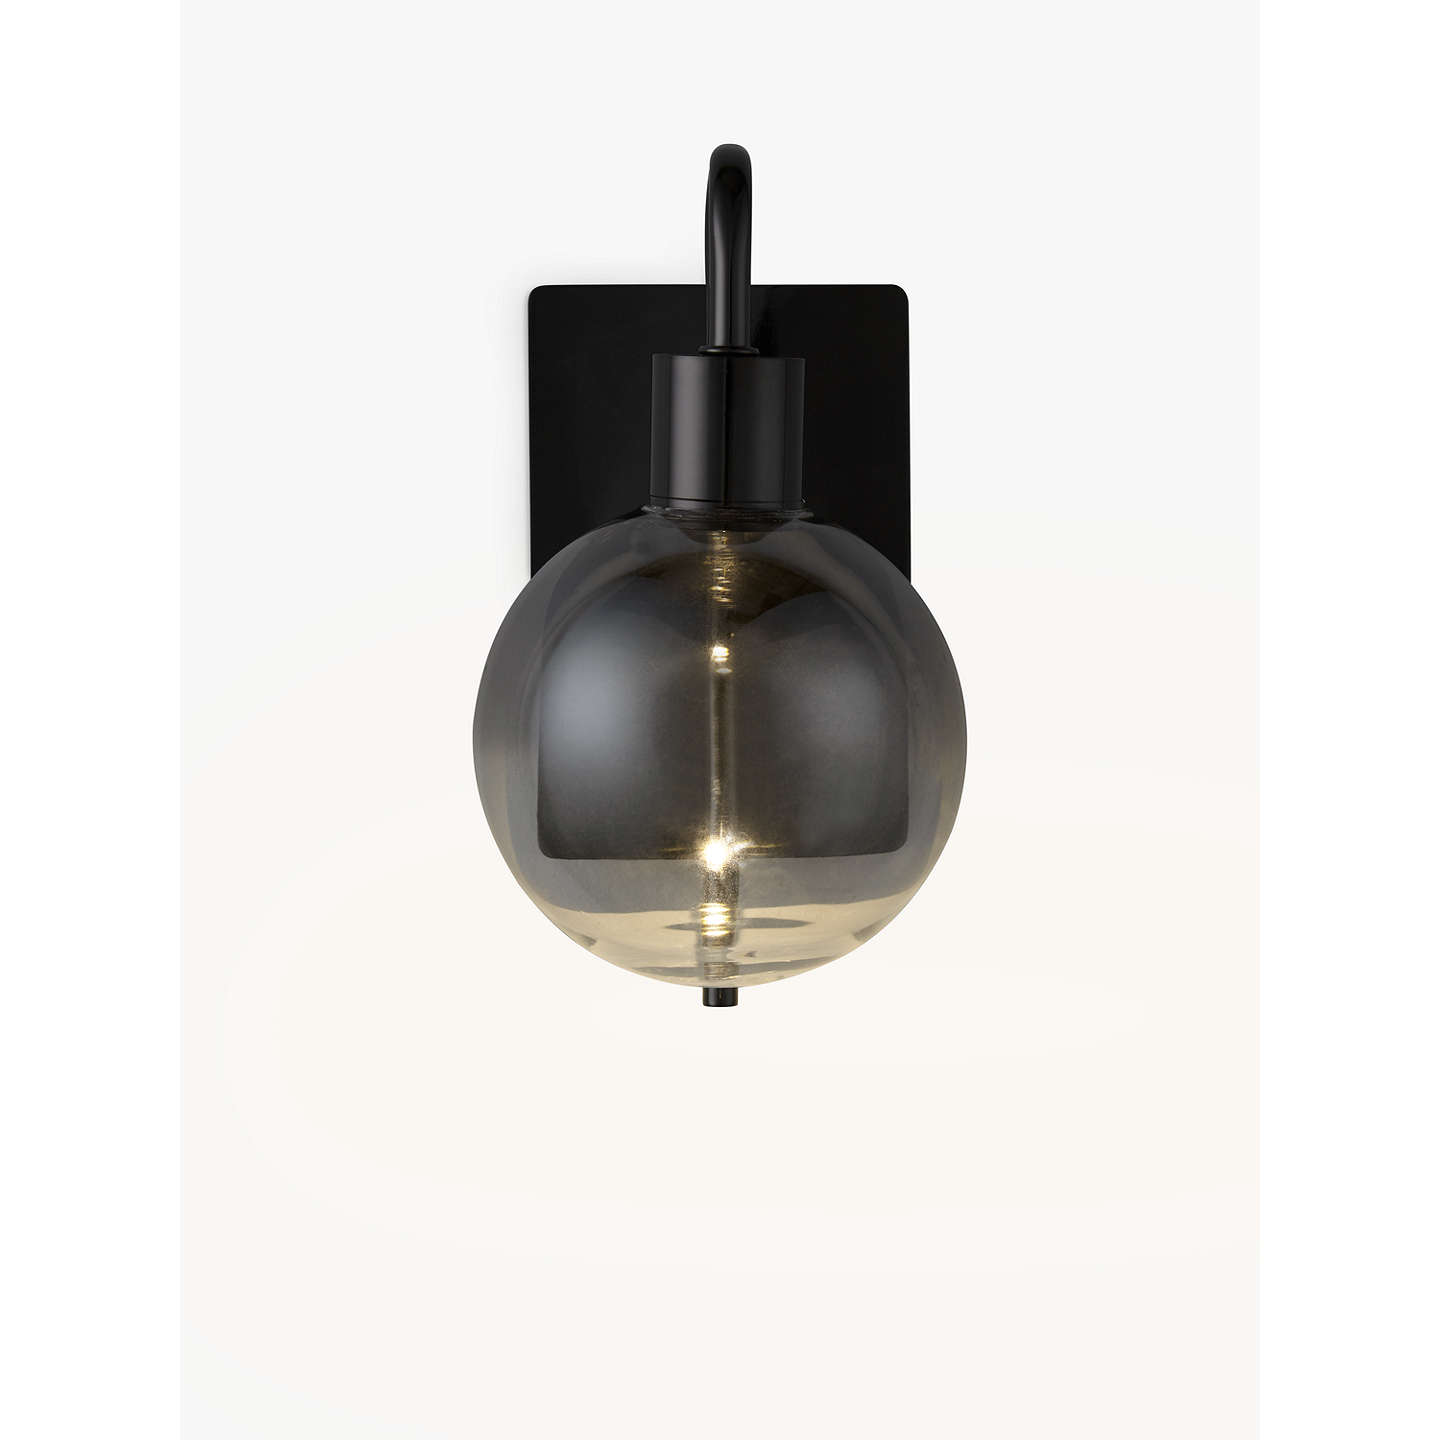 john lewis dano led ombre lustre single wall light smoke at john lewis